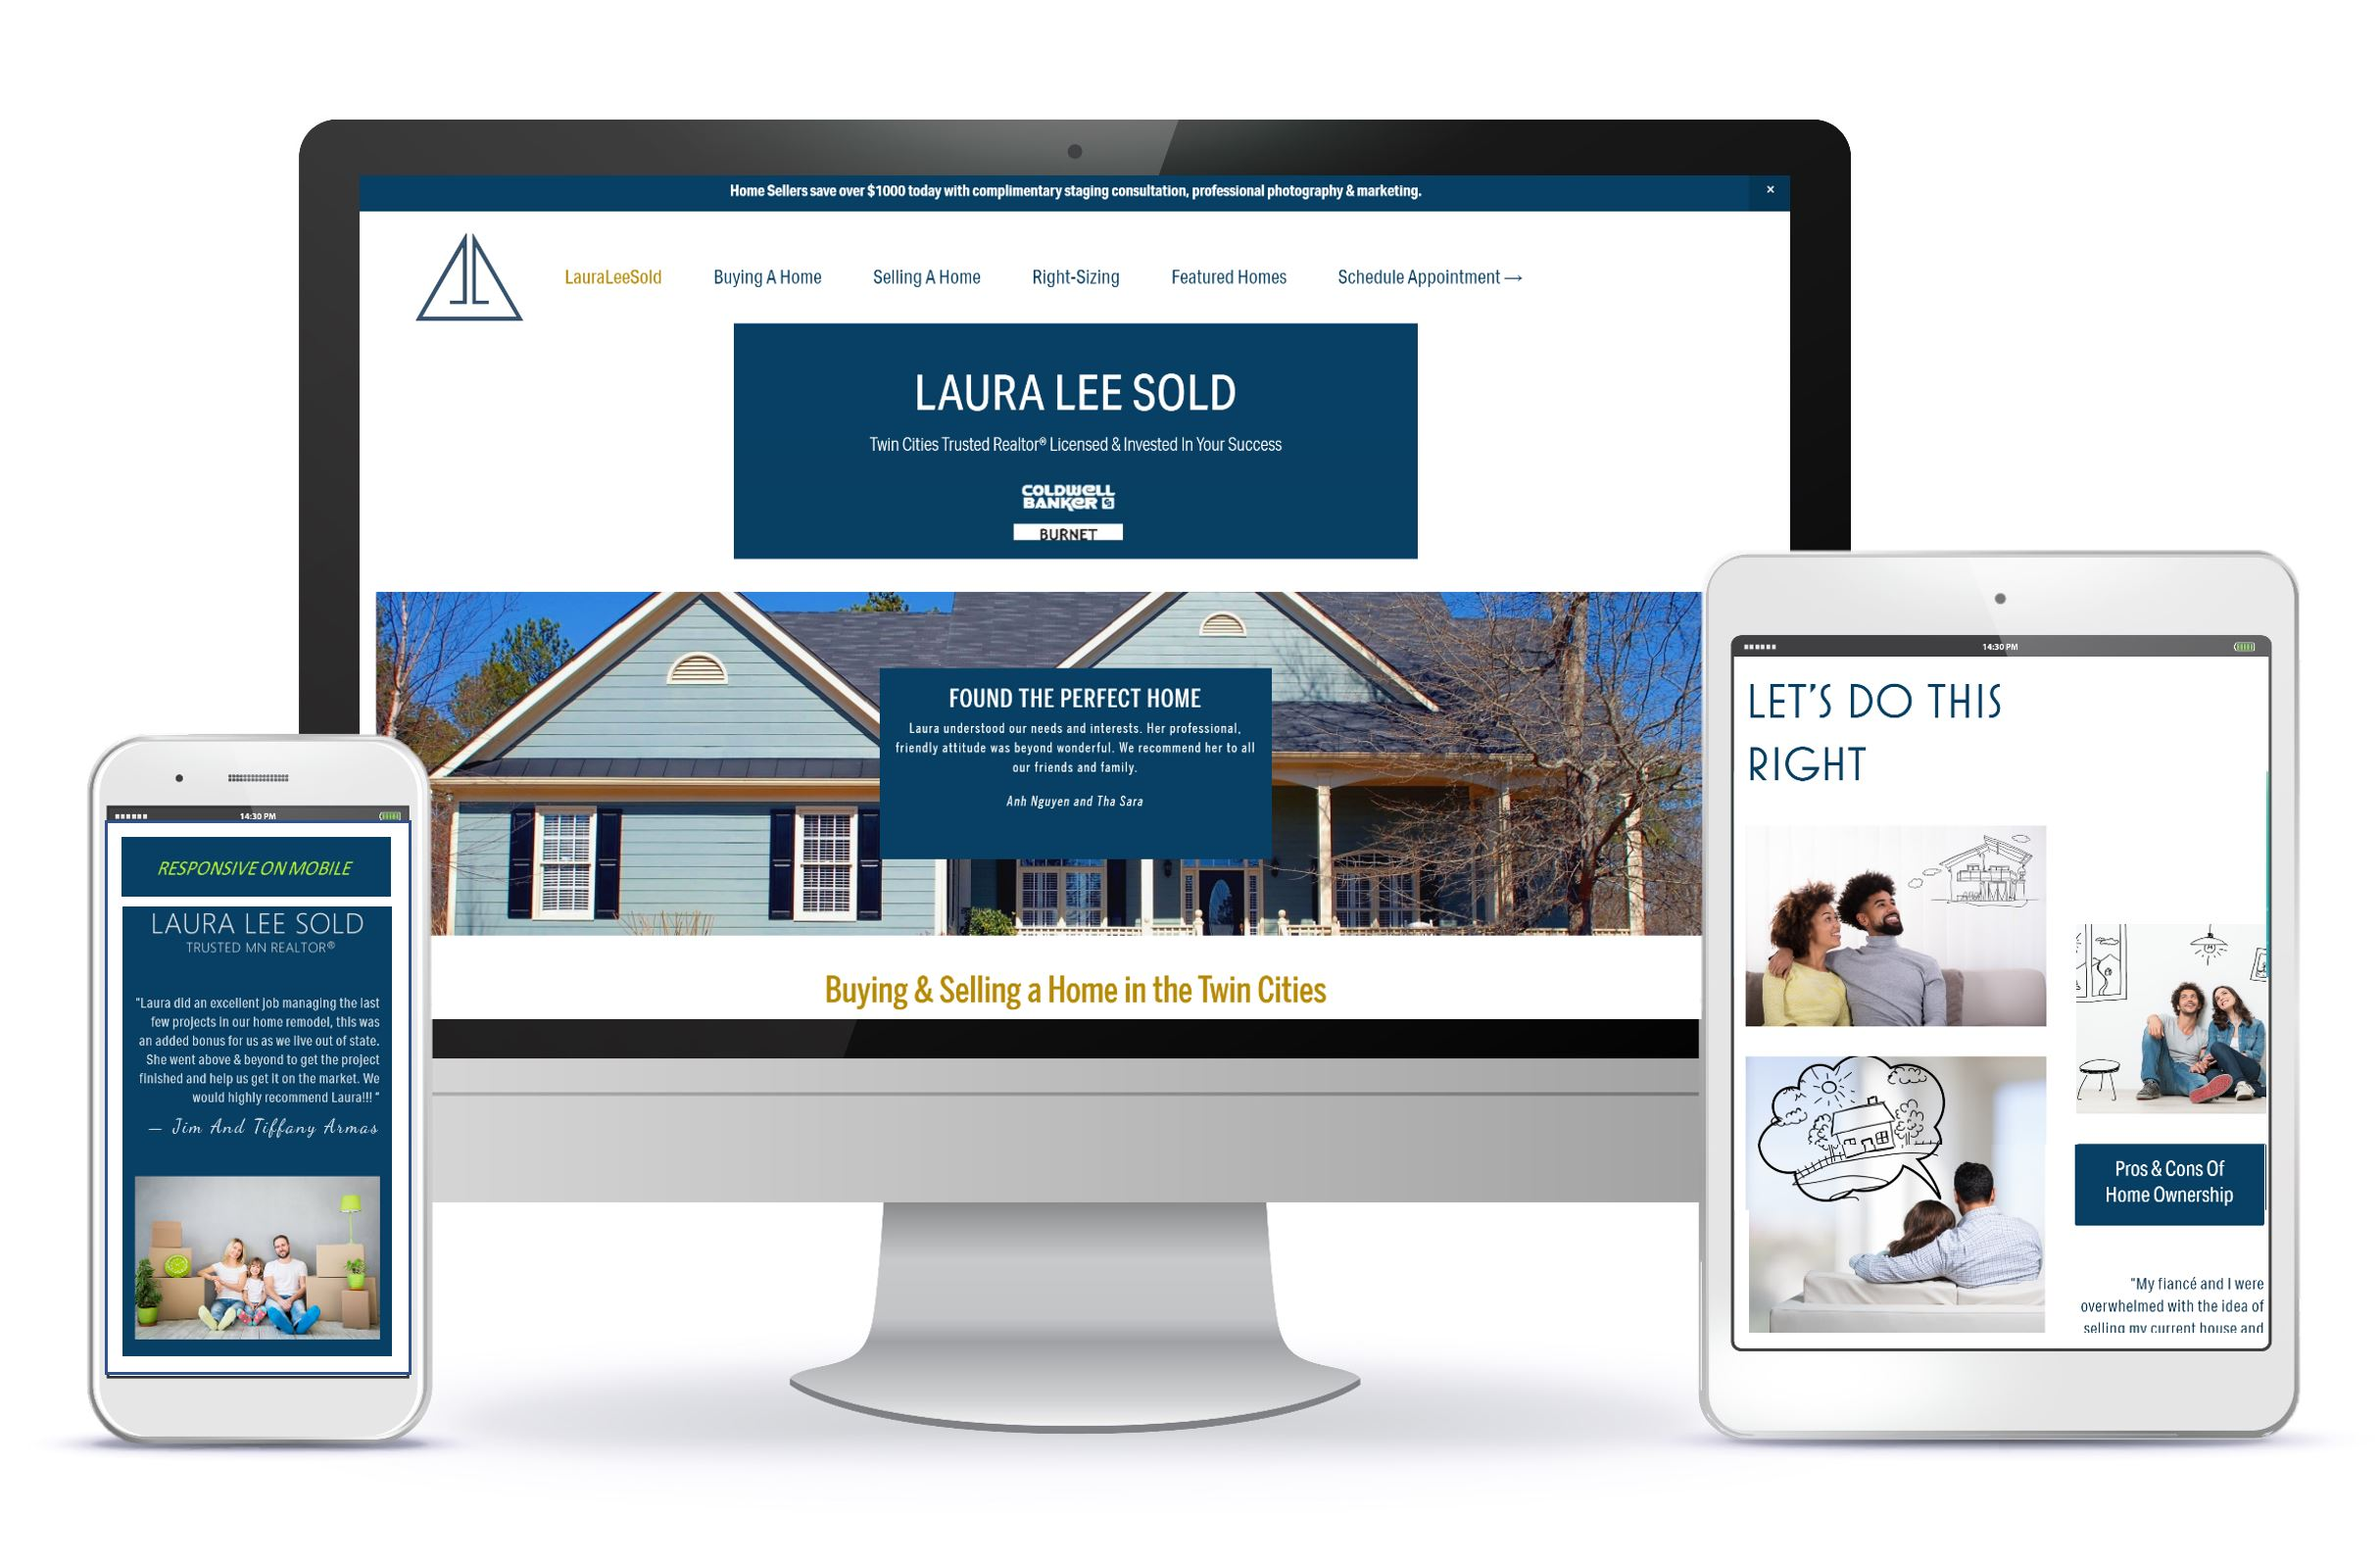 Realtor reaches growing market with strategic website content and an affordable, great-looking, Squarespace Website design by Melinda Bak